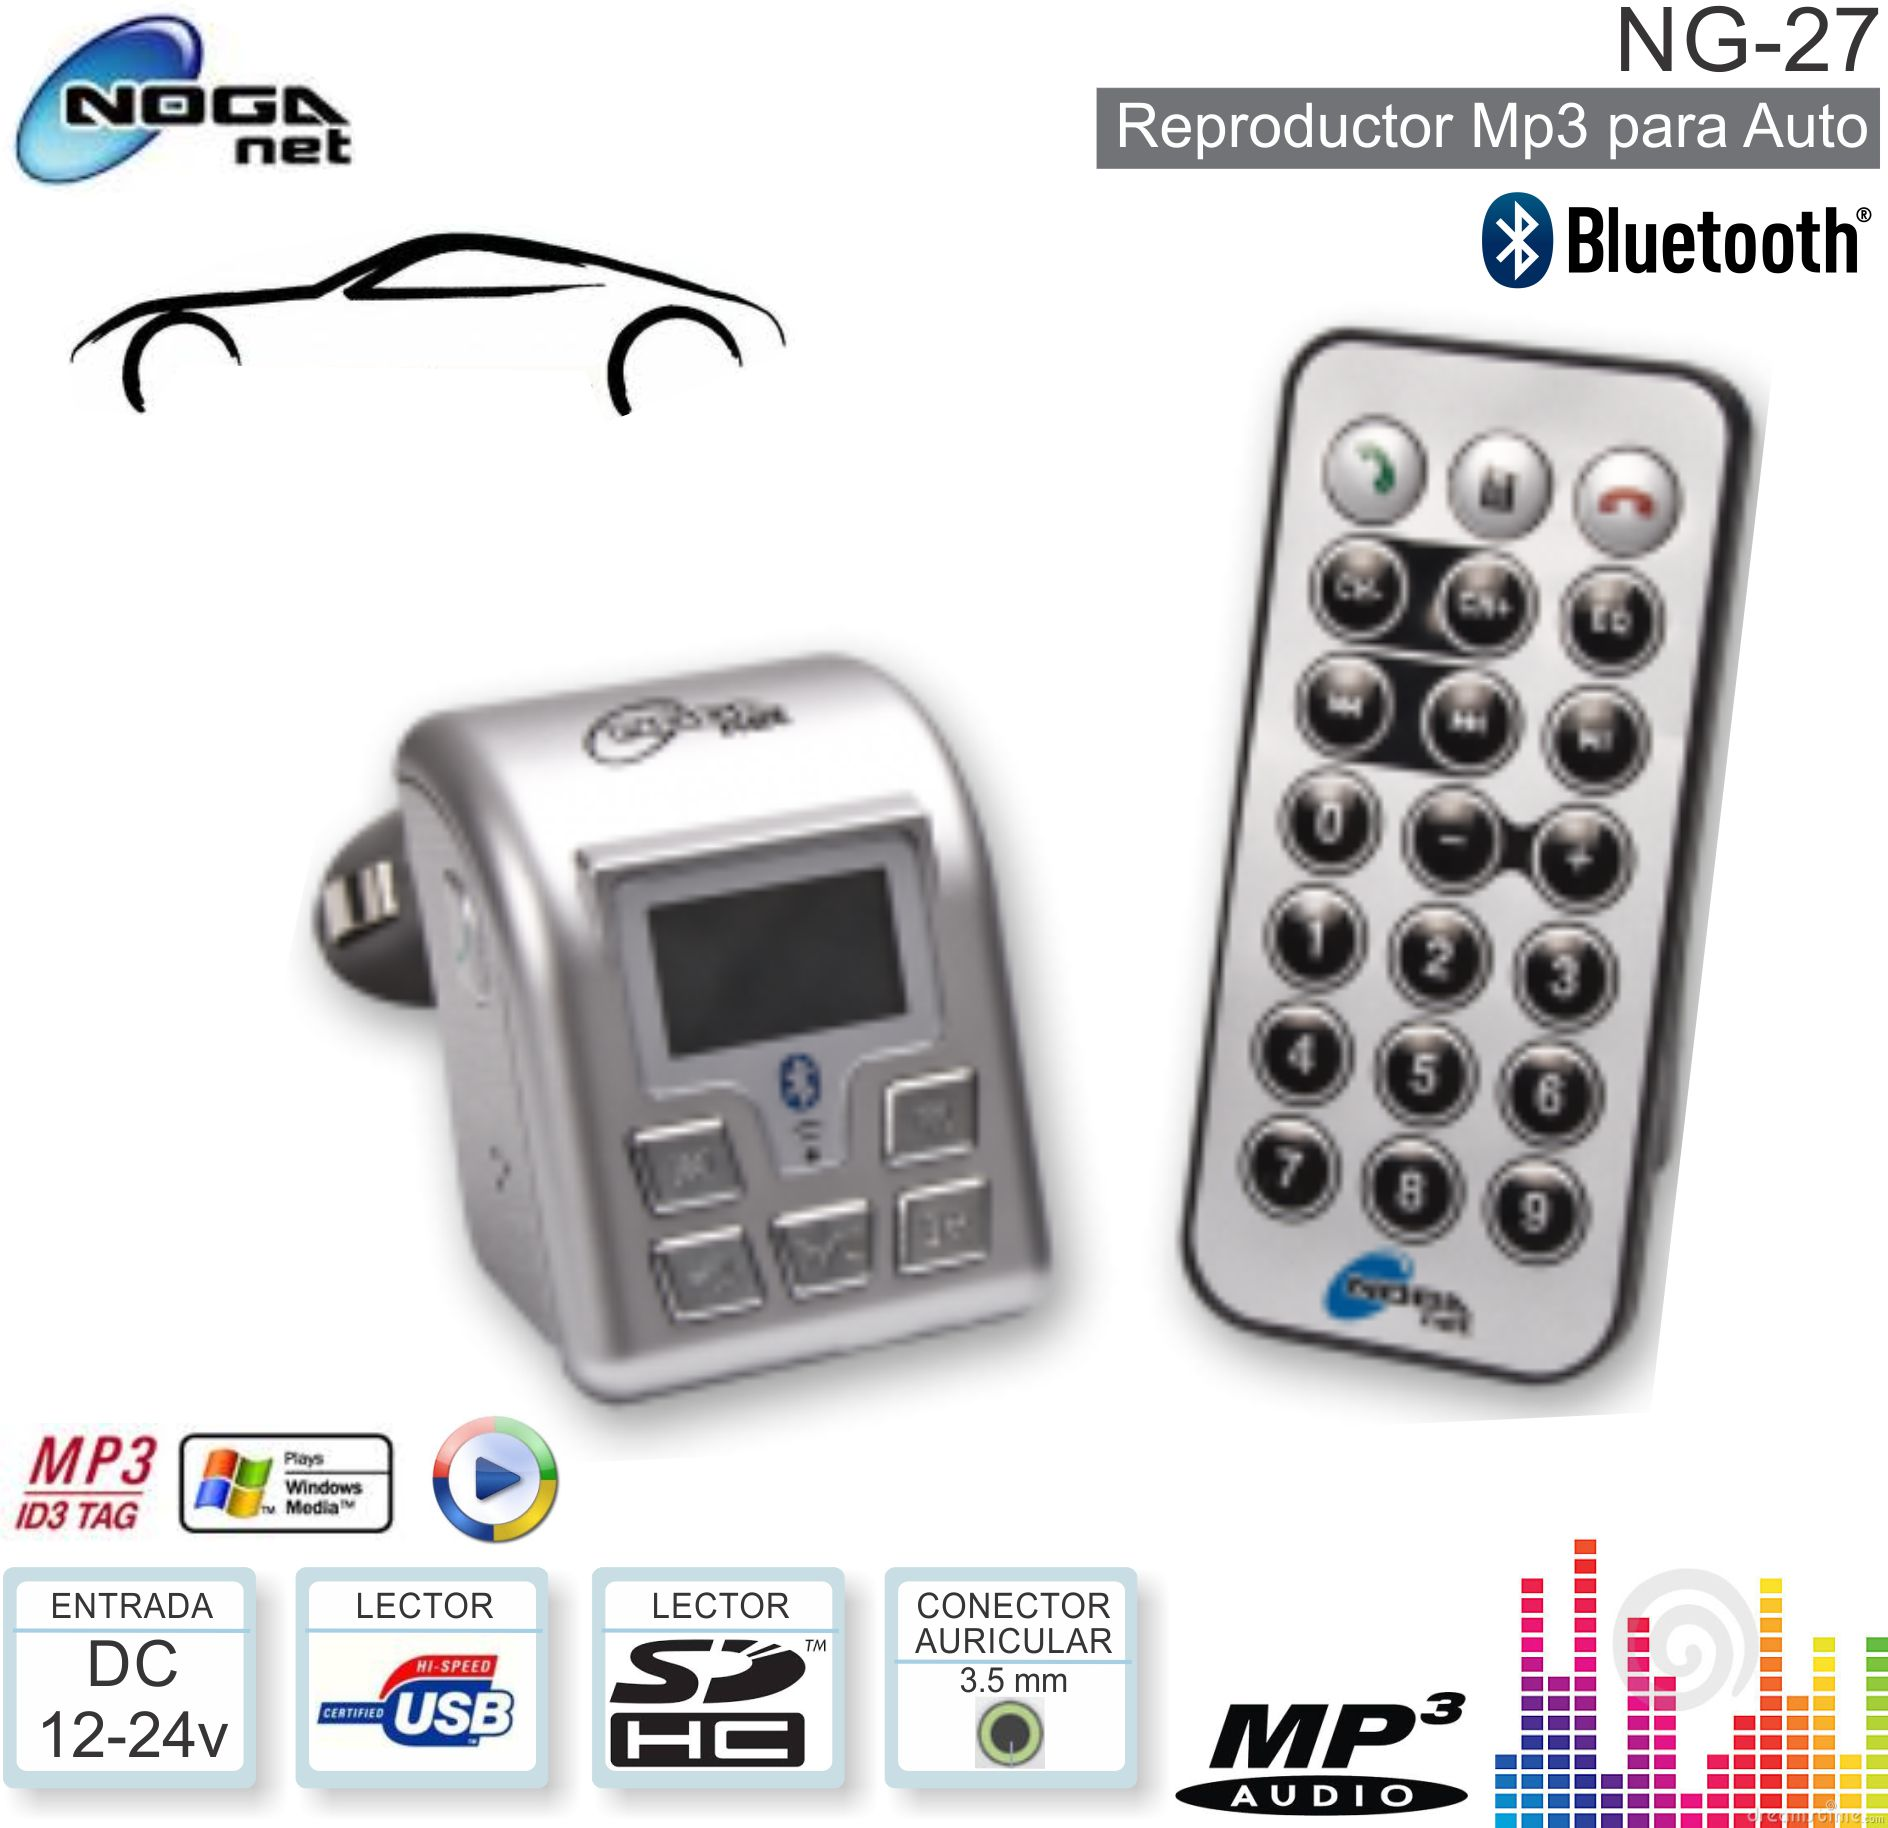 MP3 CAR NOGANET NG-27 Bluetooth